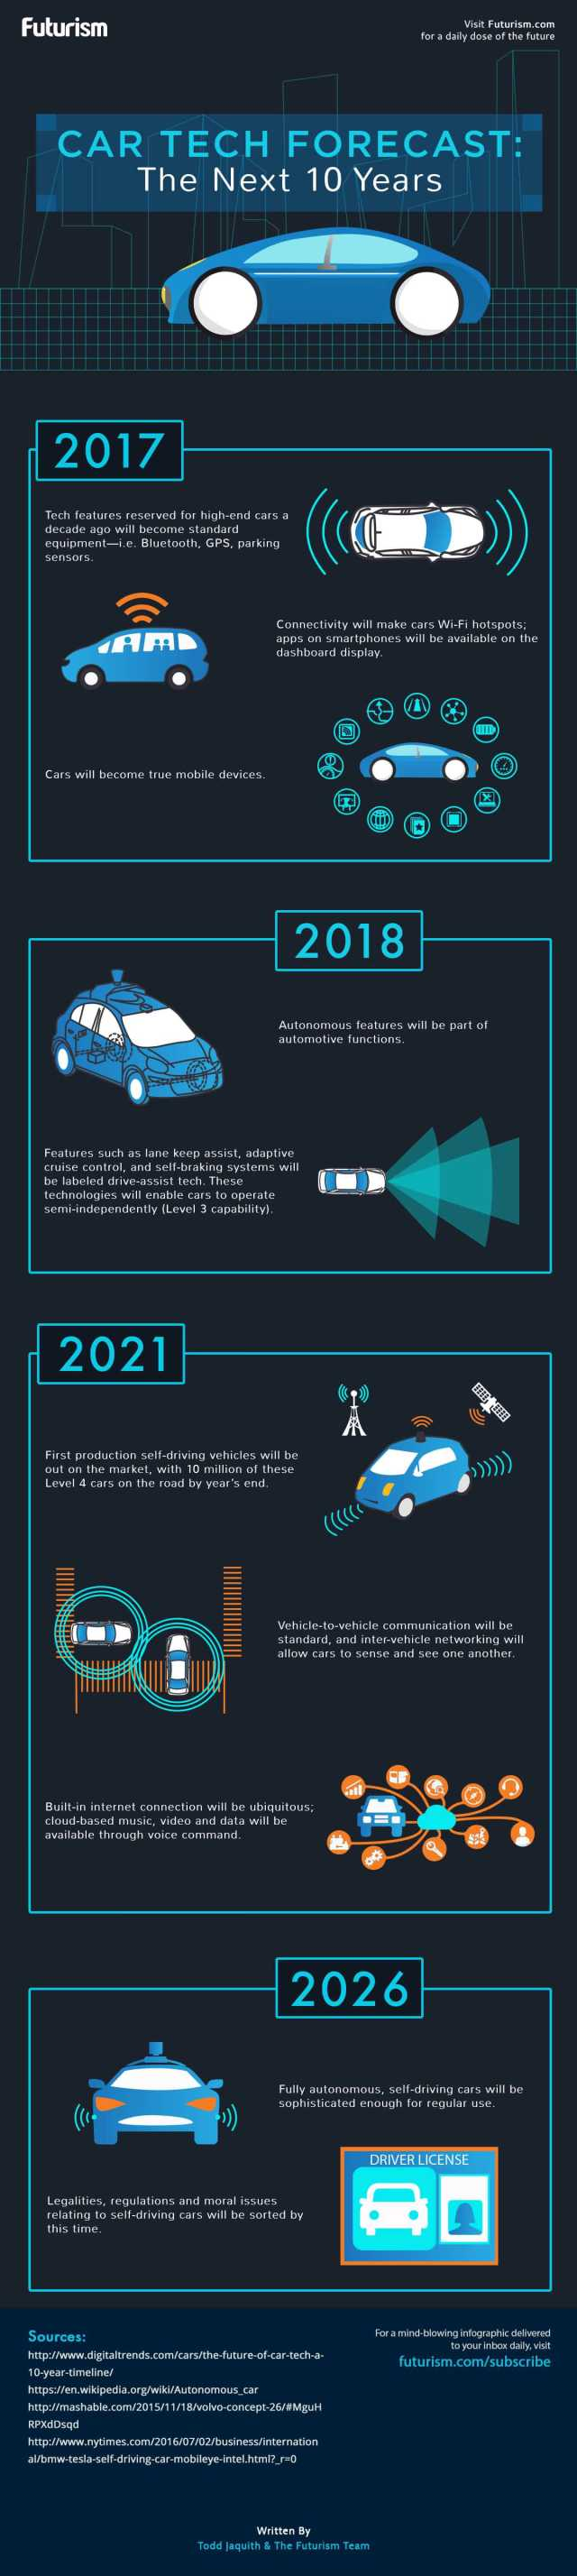 Car Tech Forecast: The Next 10 Years